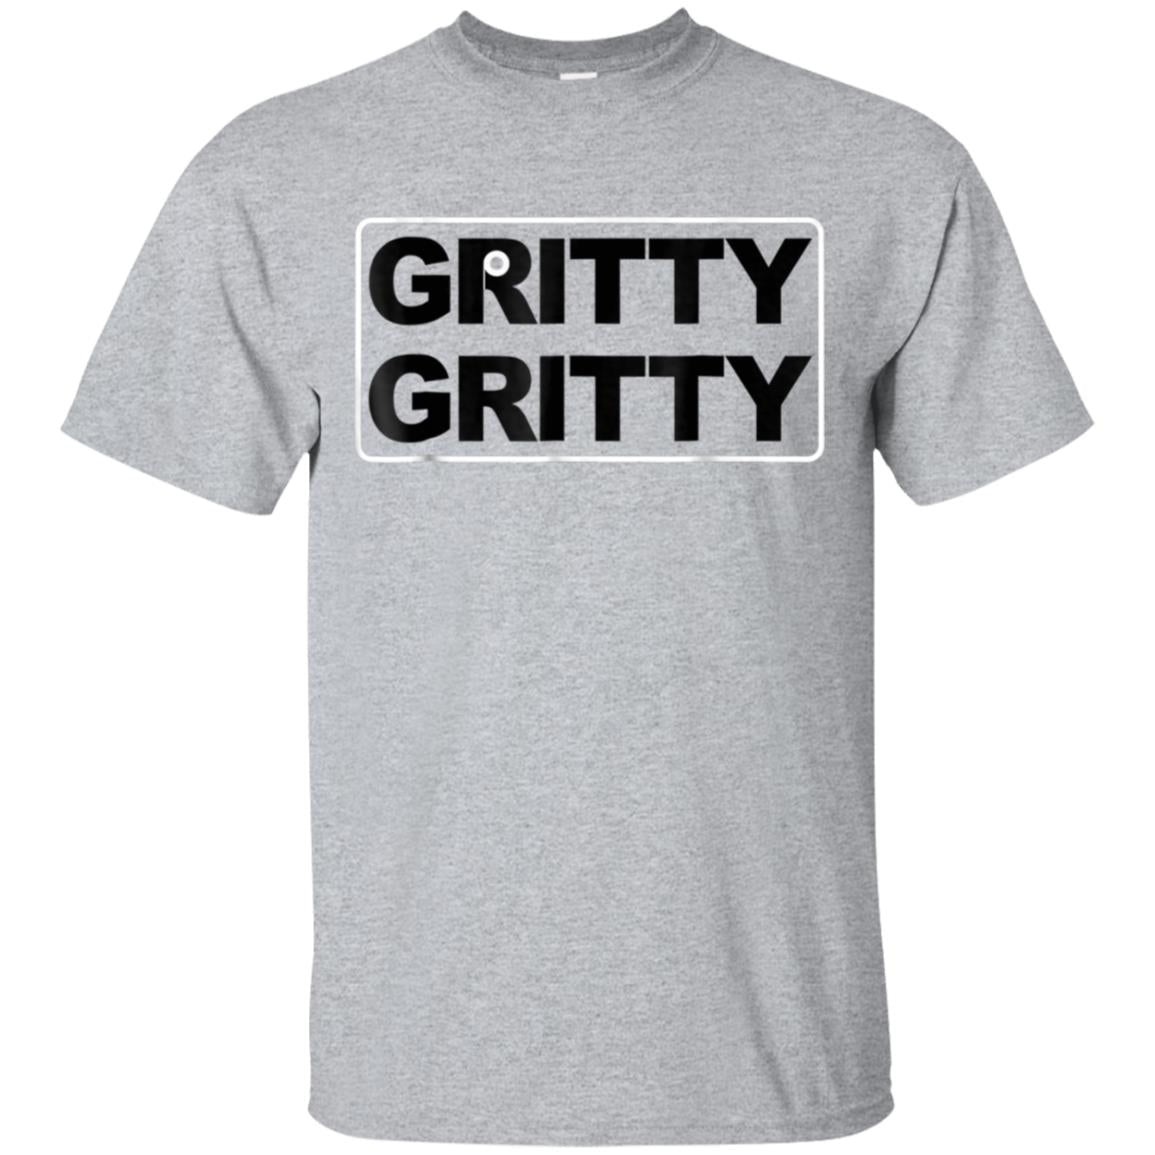 Gritty Gritty 99promocode